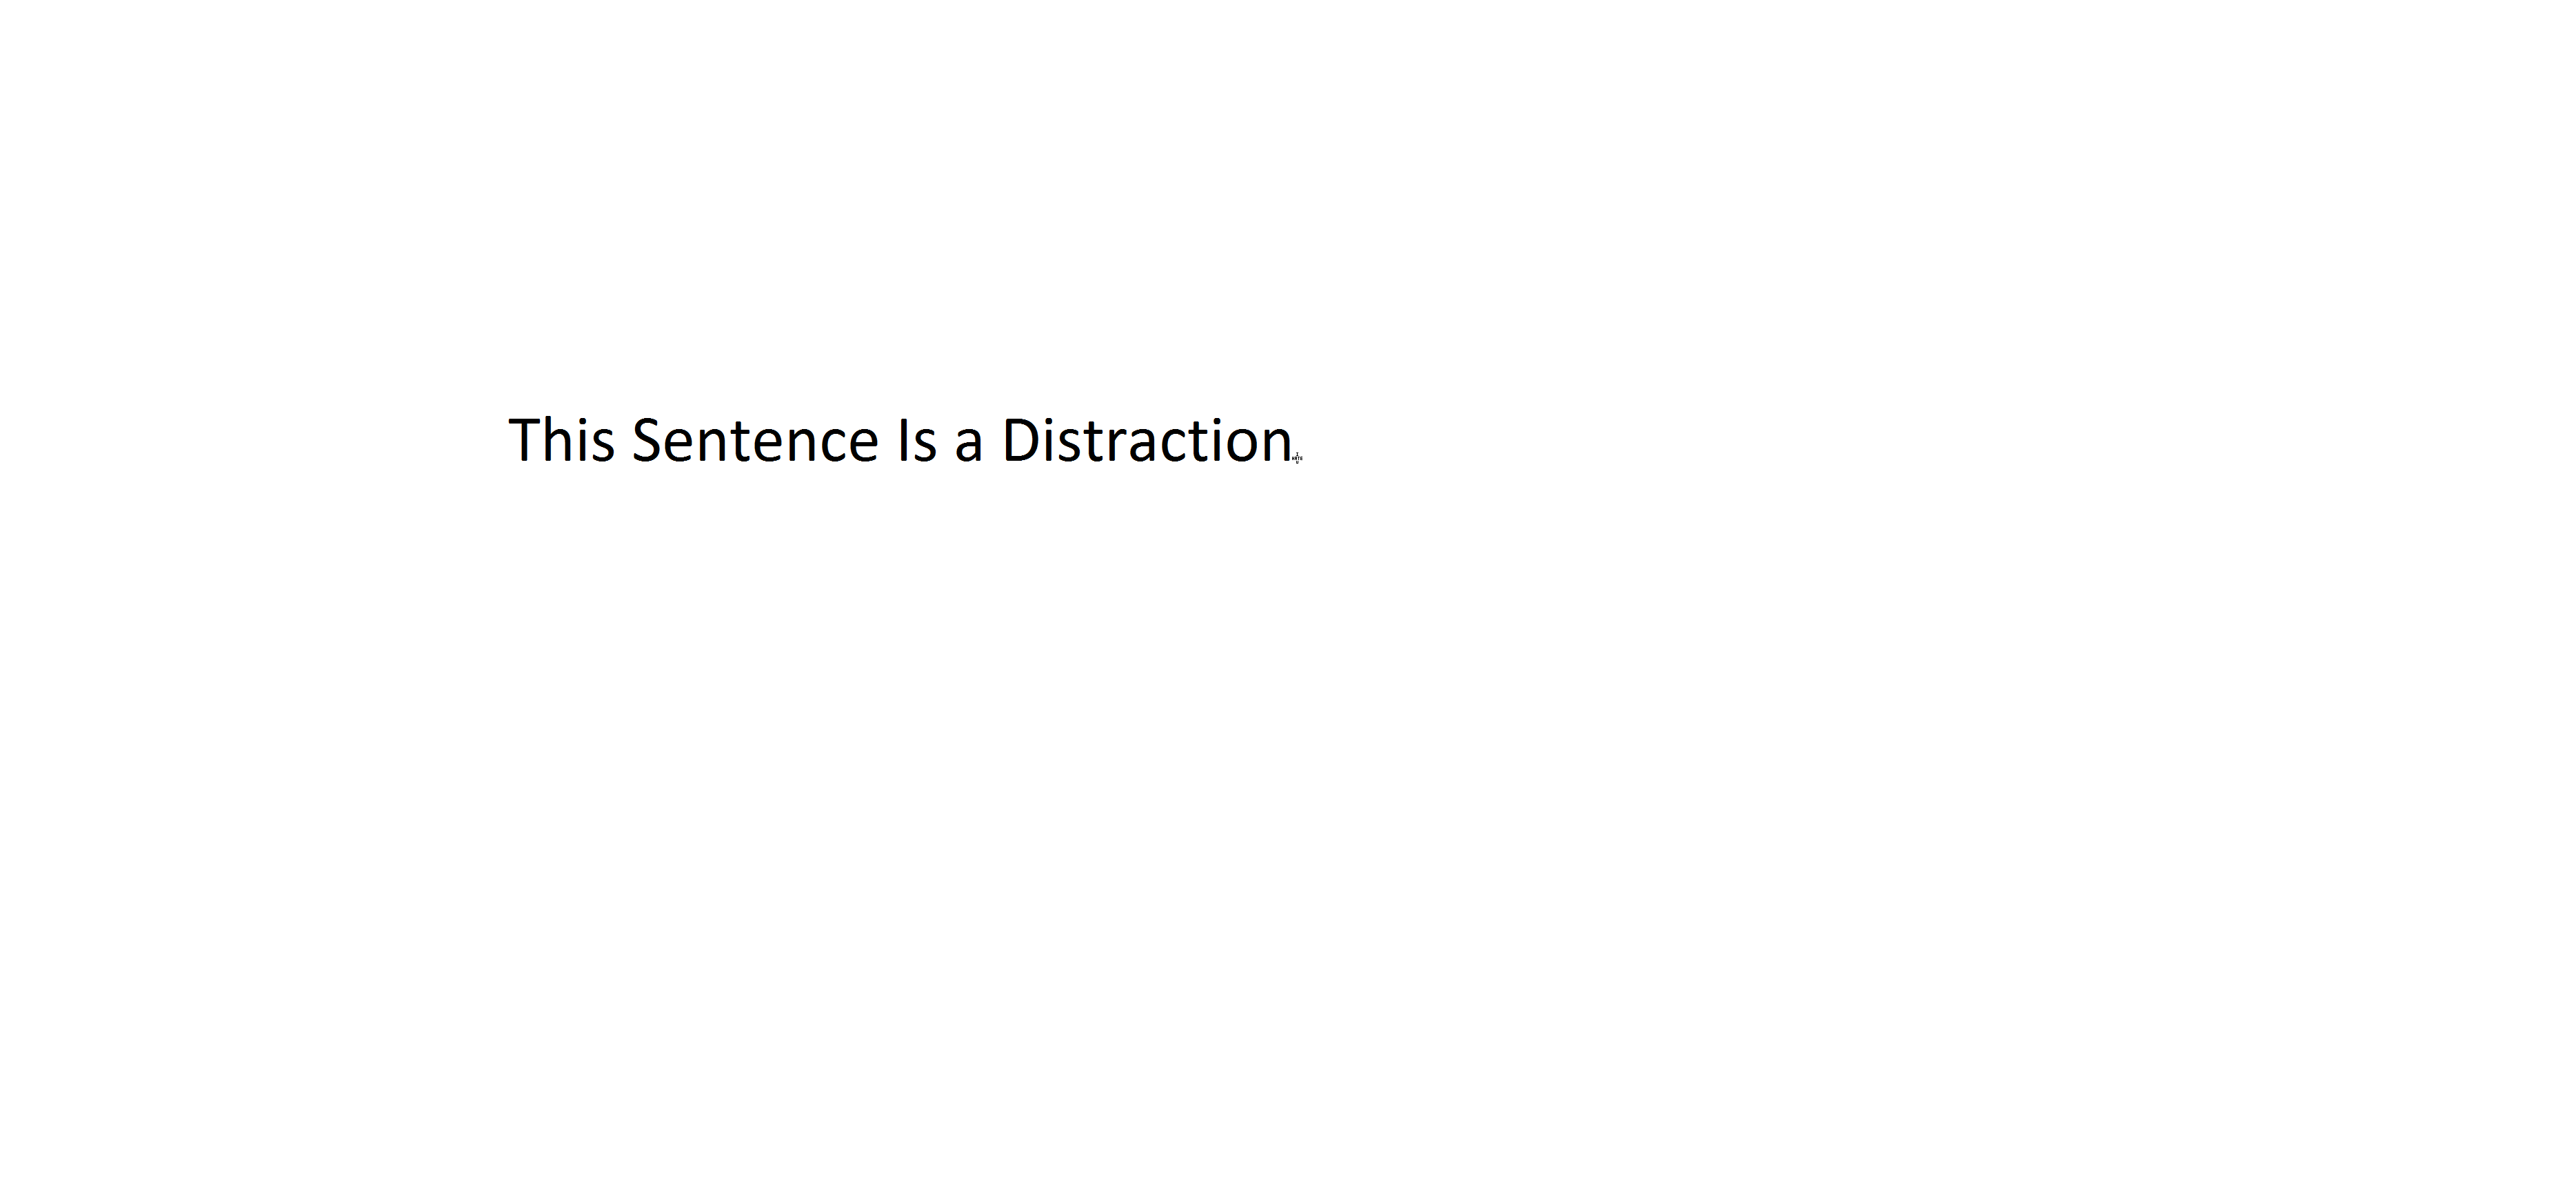 Distracting Sentence